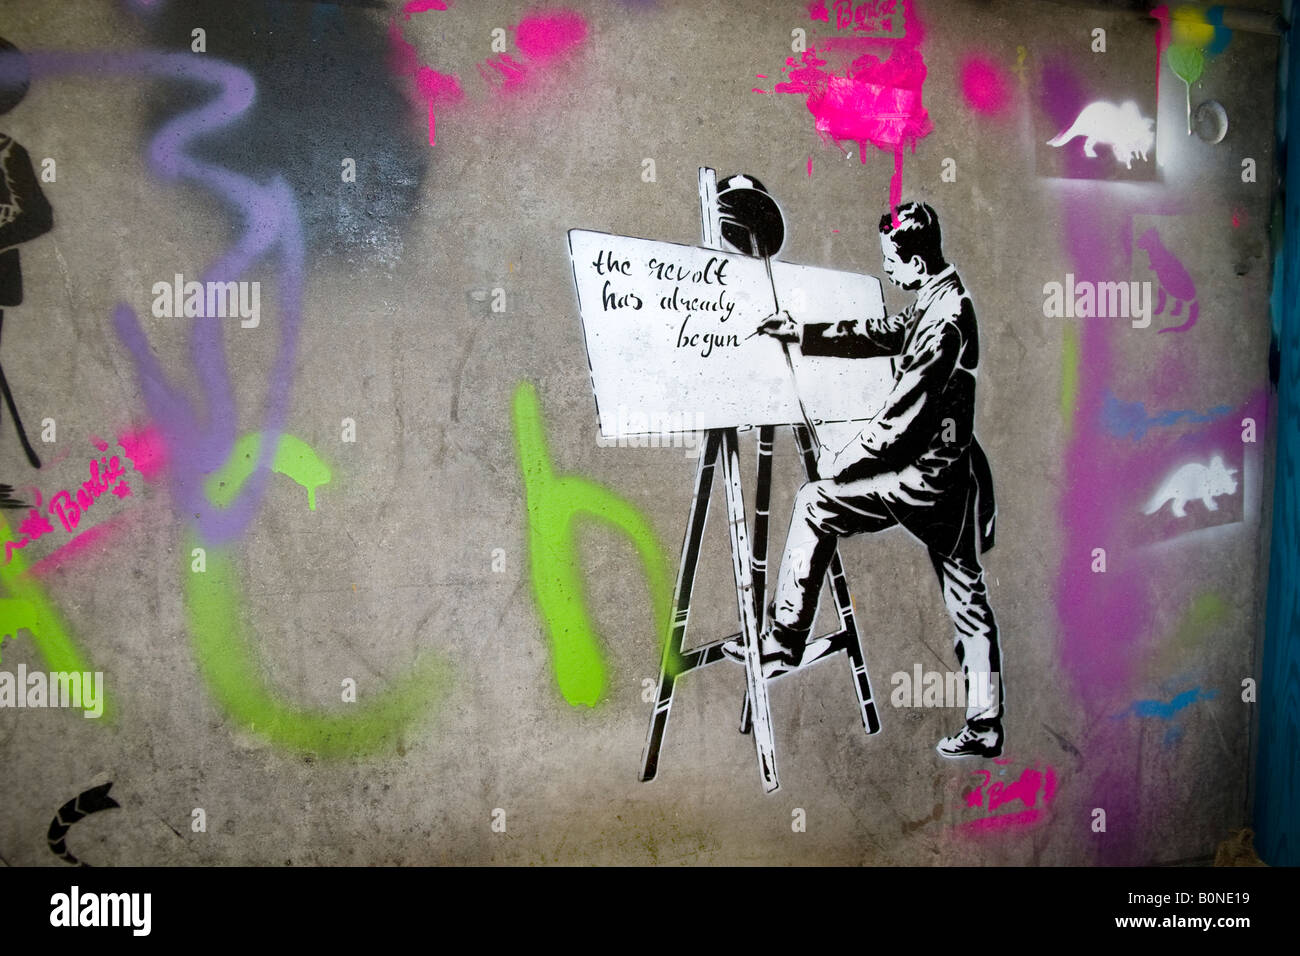 Stencil art from Banksy's Cans Festival - Stock Image